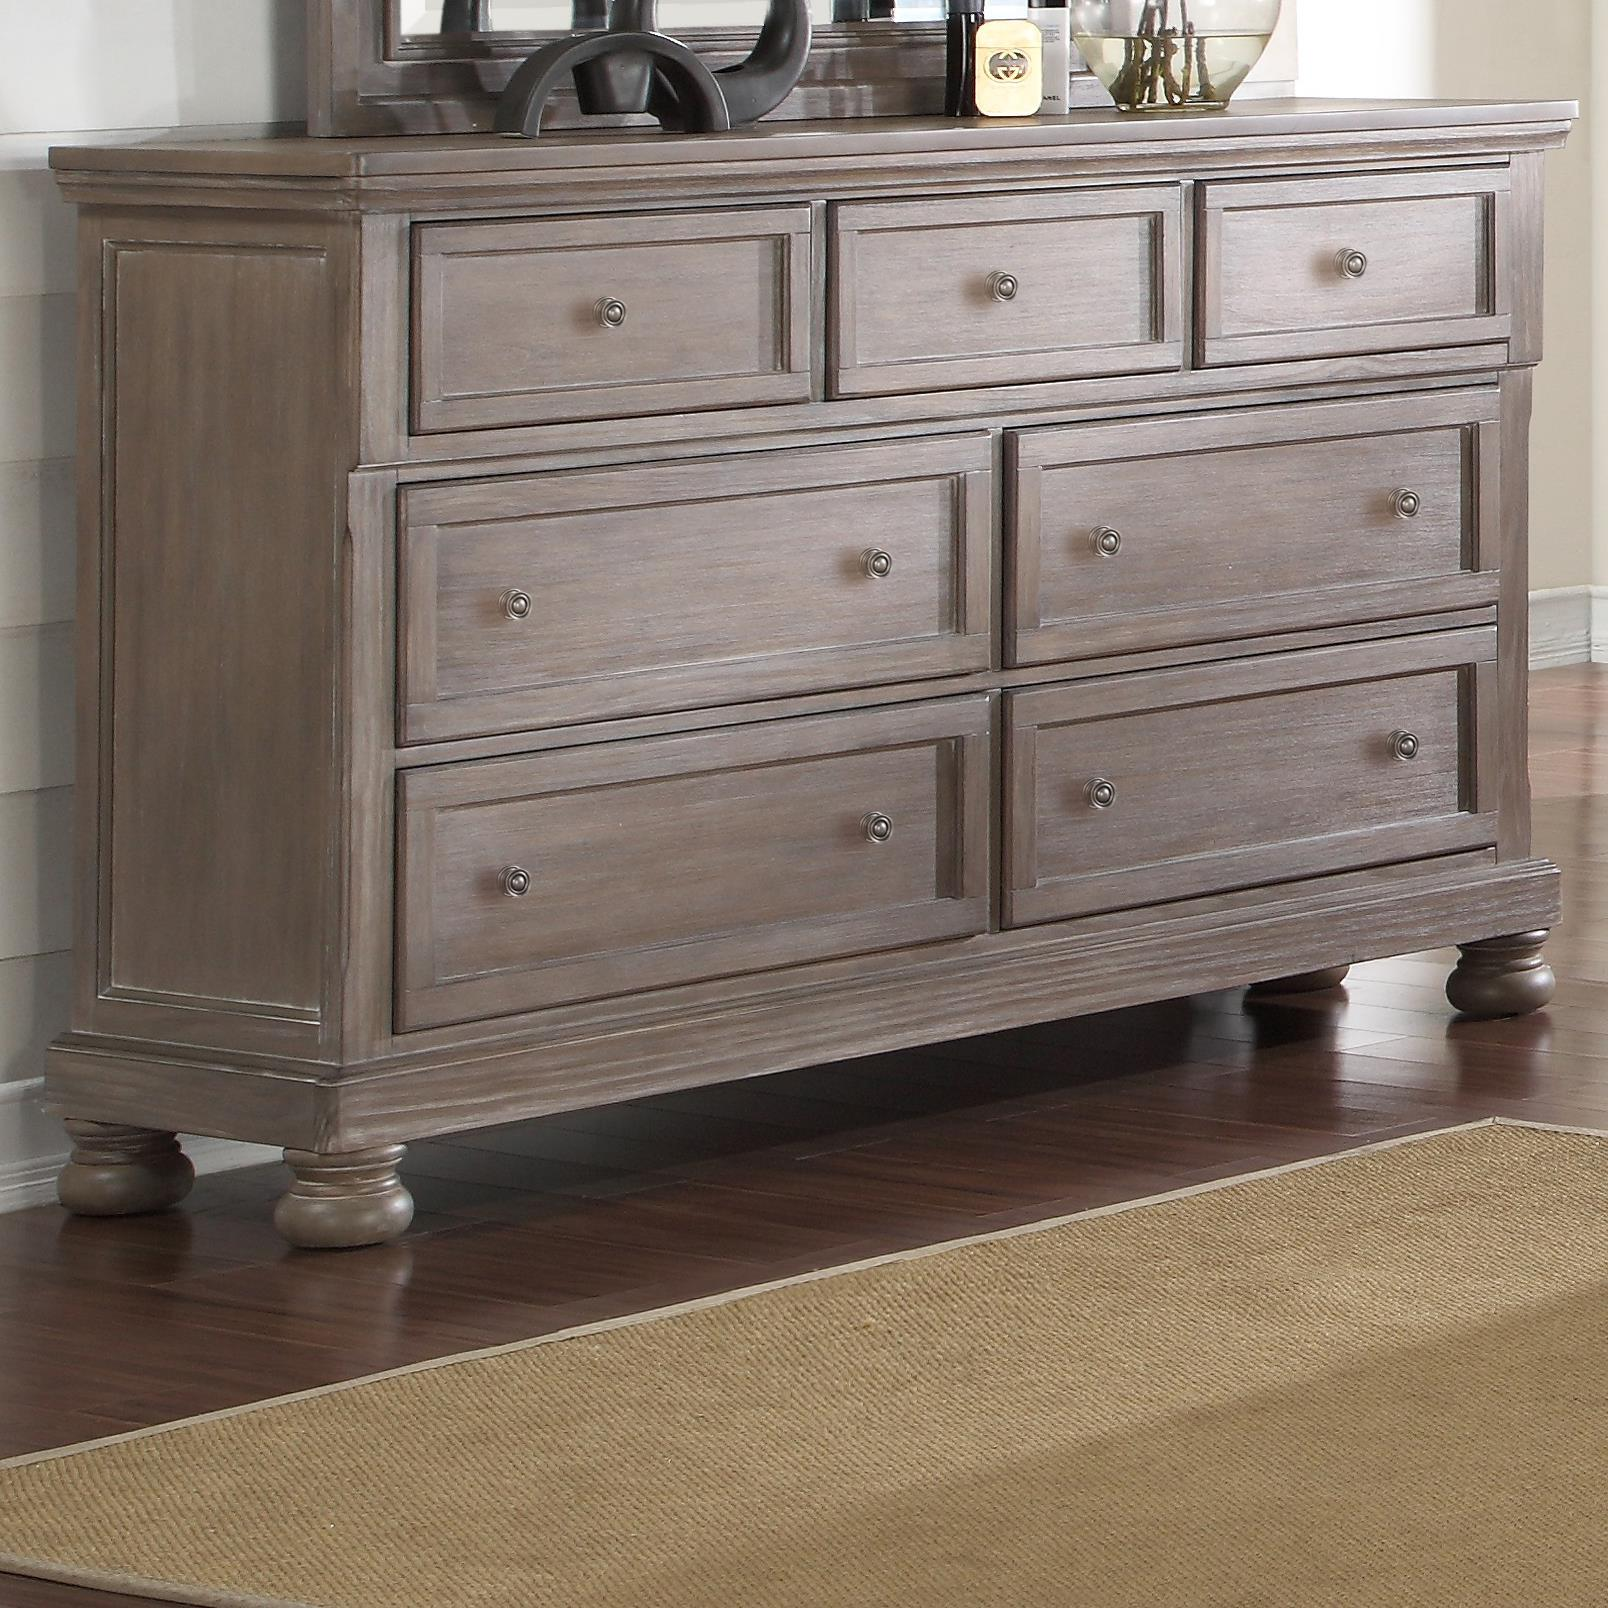 Allegra Dresser by New Classic at Carolina Direct